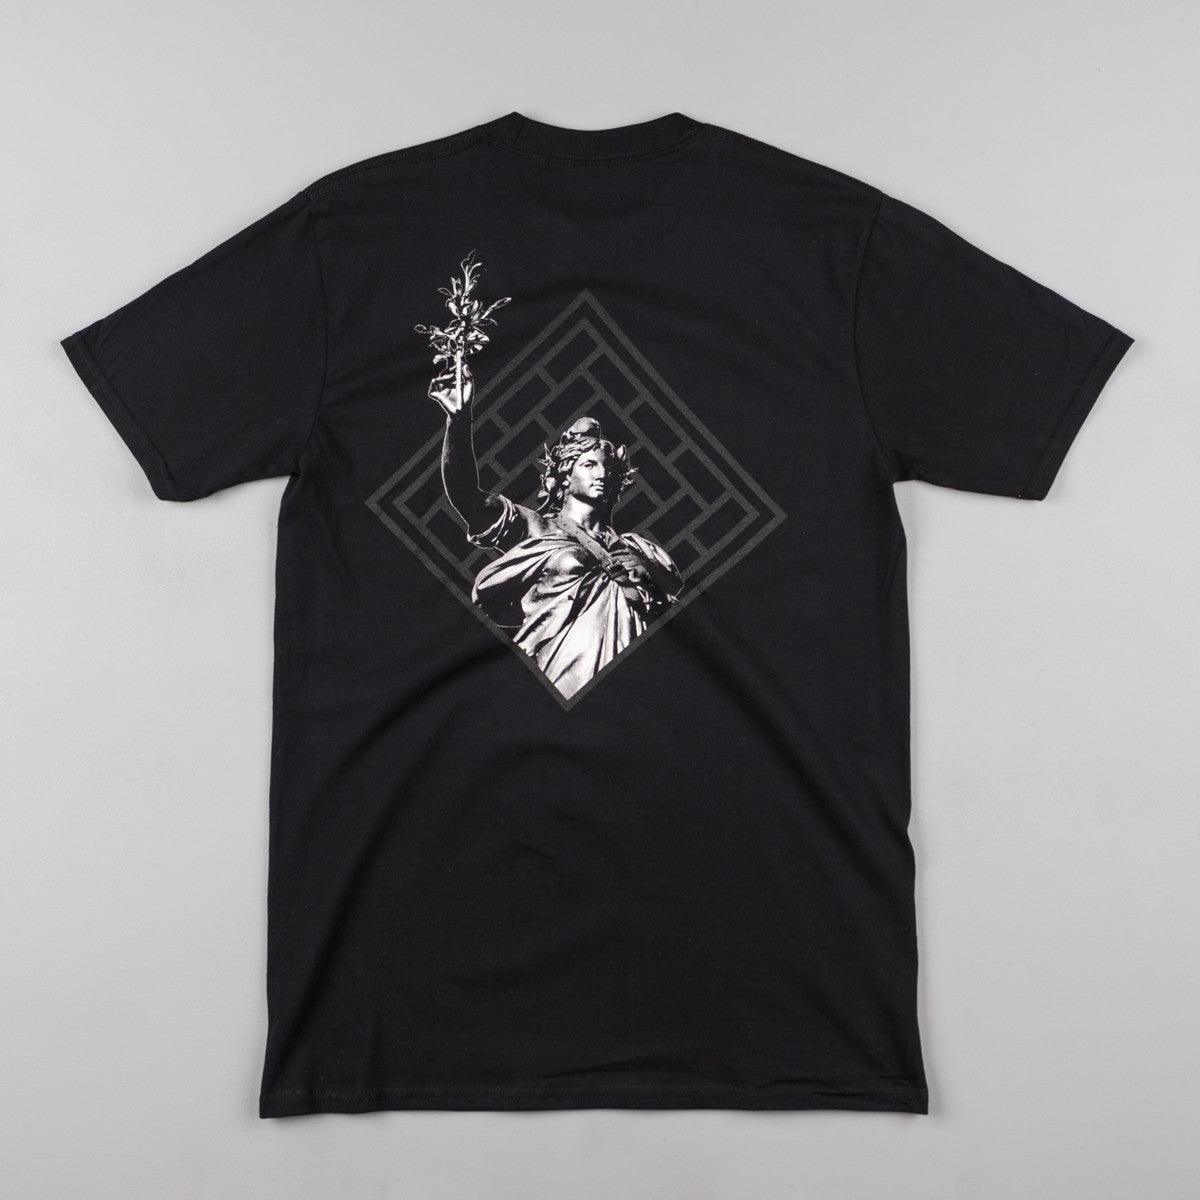 The National Skateboard Co Republique T-Shirt - Black